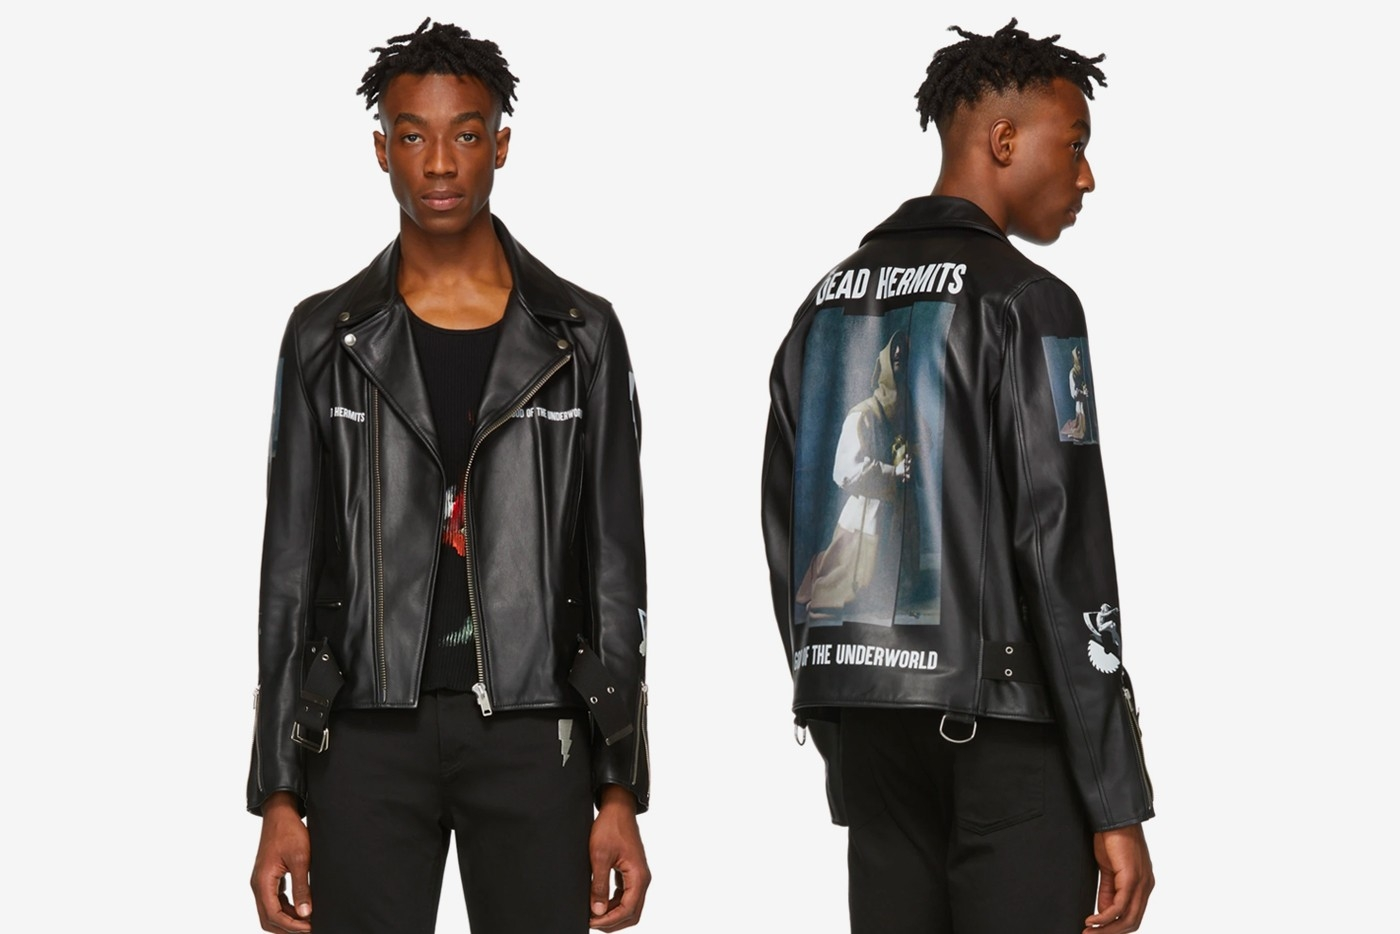 https___hypebeast.com_image_2019_03_undercover-ss19-dead-hermits-vlads-release-003.jpg